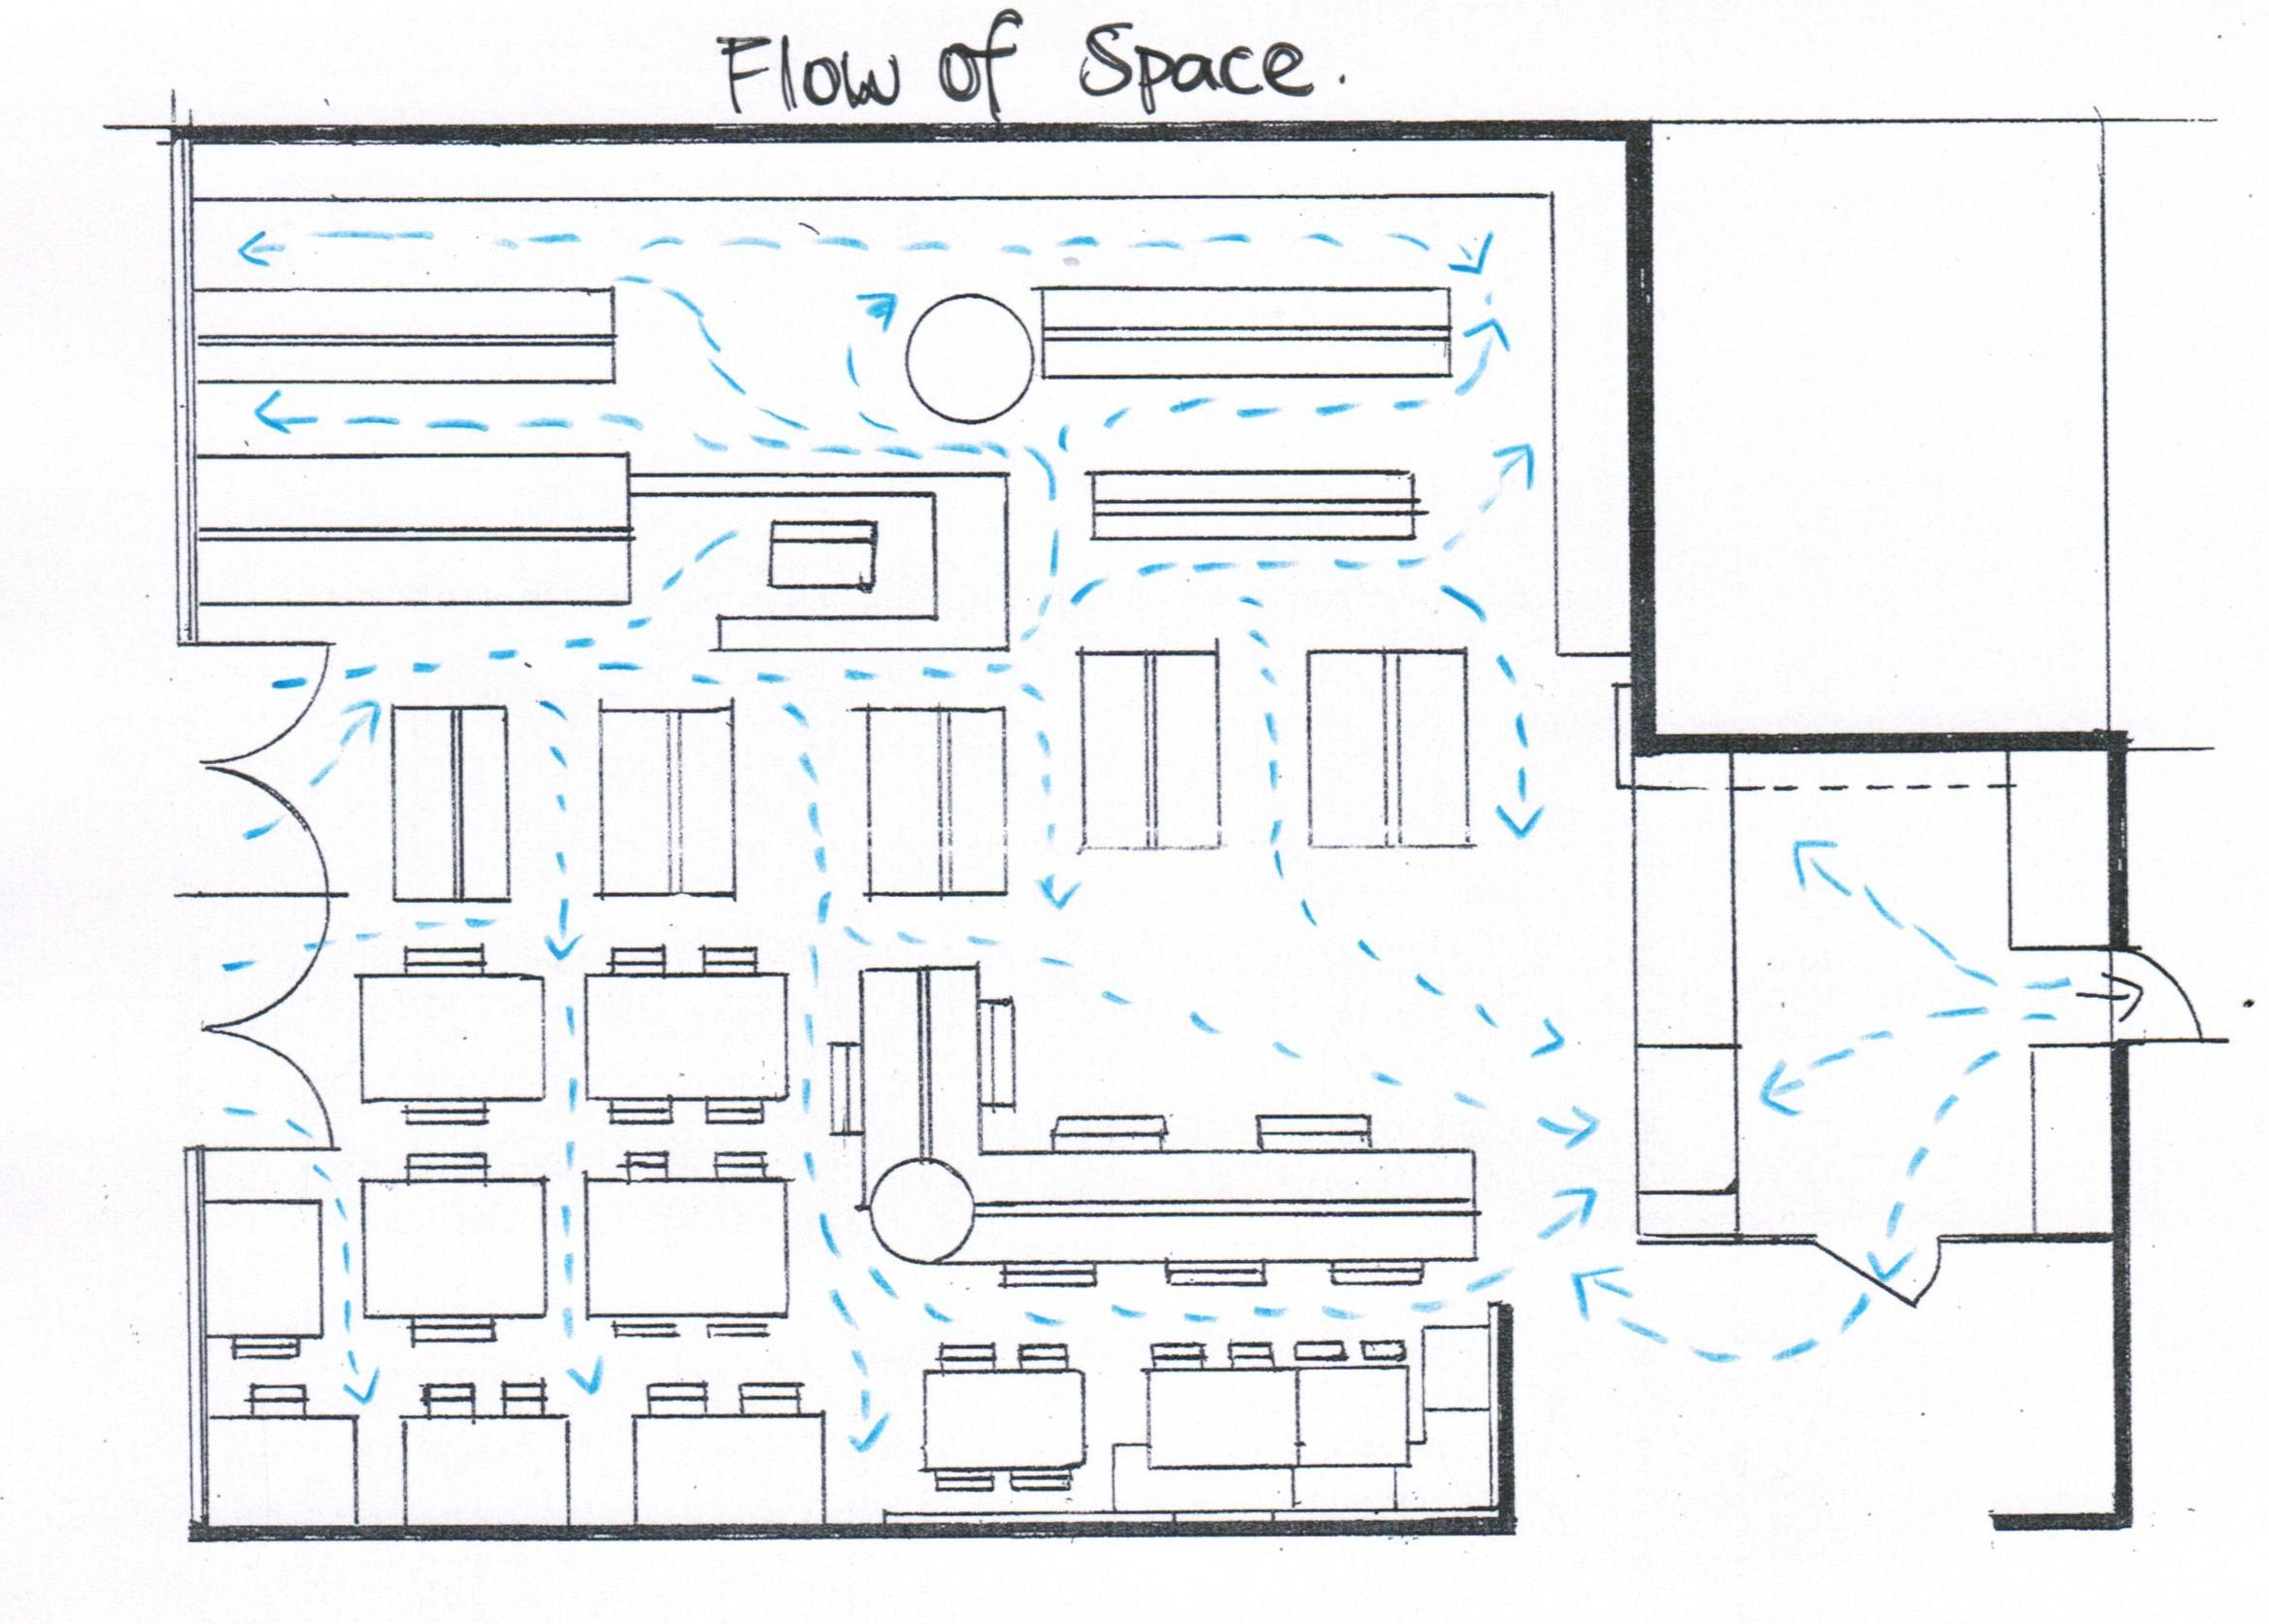 FLOW OF SPACE (COFFEE SHOP)